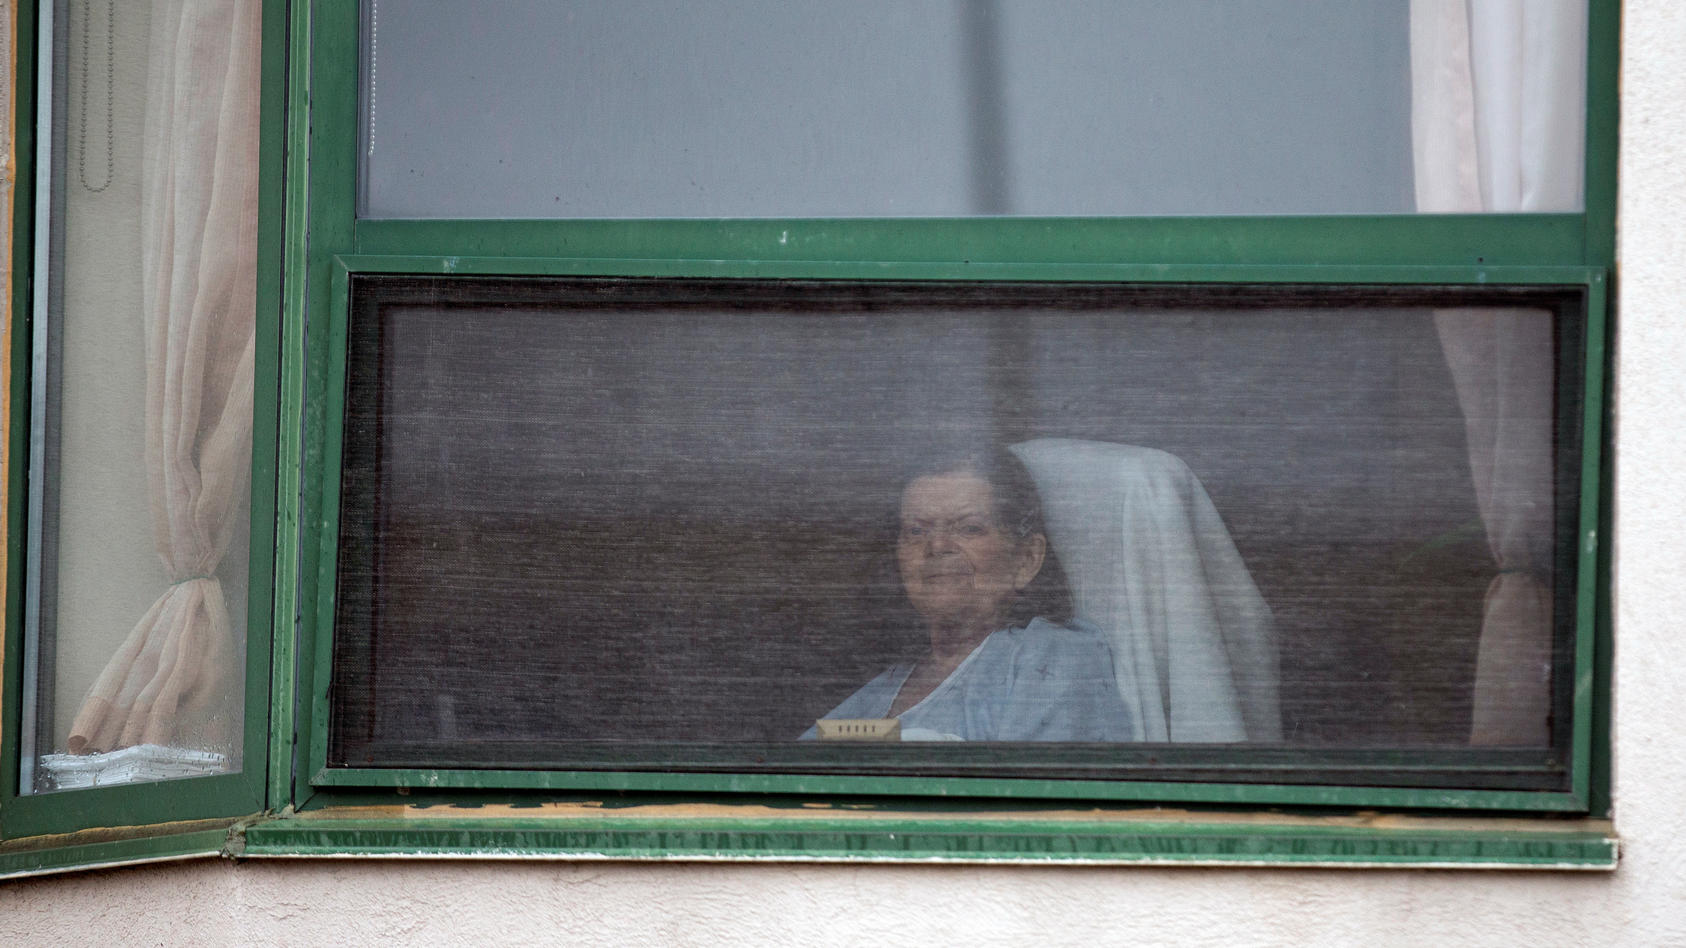 A resident looks out her window at a senior's long-term care facility during the coronavirus disease (COVID-19) outbreak, in Montreal